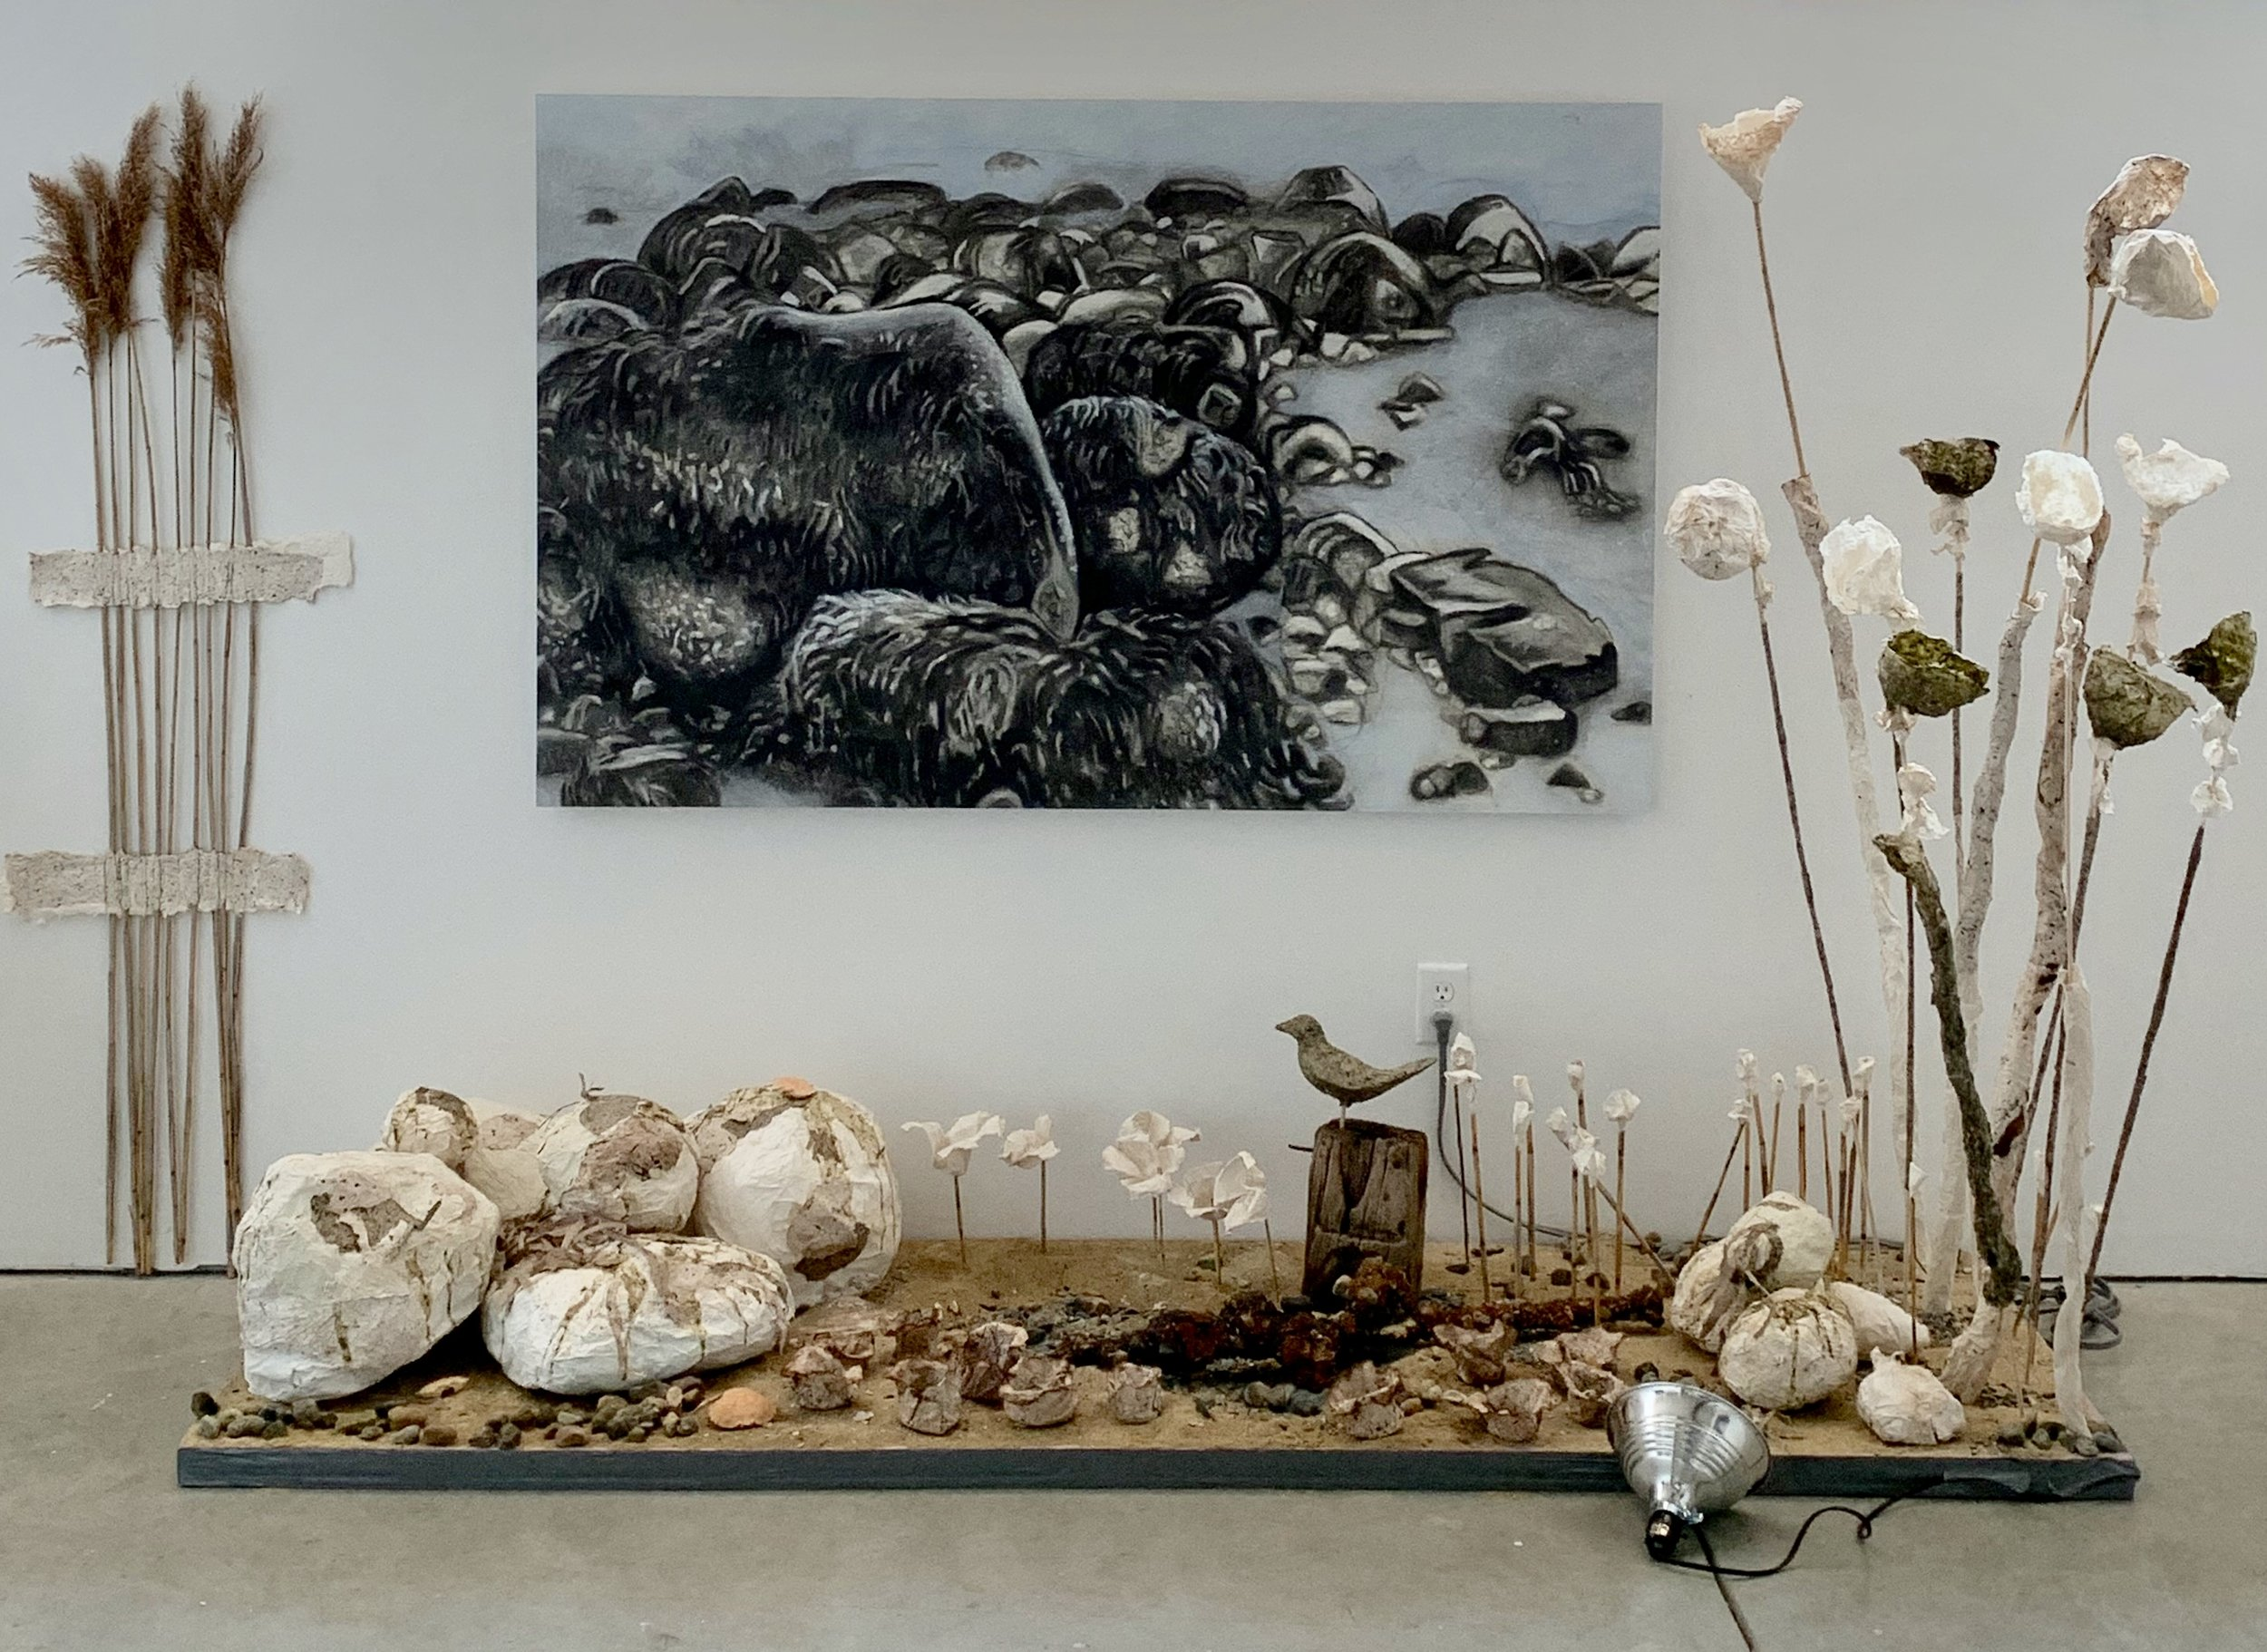 Installation shot, Galatea Fine Art, Boston  Sea Rock Sculpture Garden .  Handmade paper from seaweed, abaca and cotton pulp with charcoal drawing in background, rocks, sand, reeds, pebbles, and found objects on fiberglass insulation.